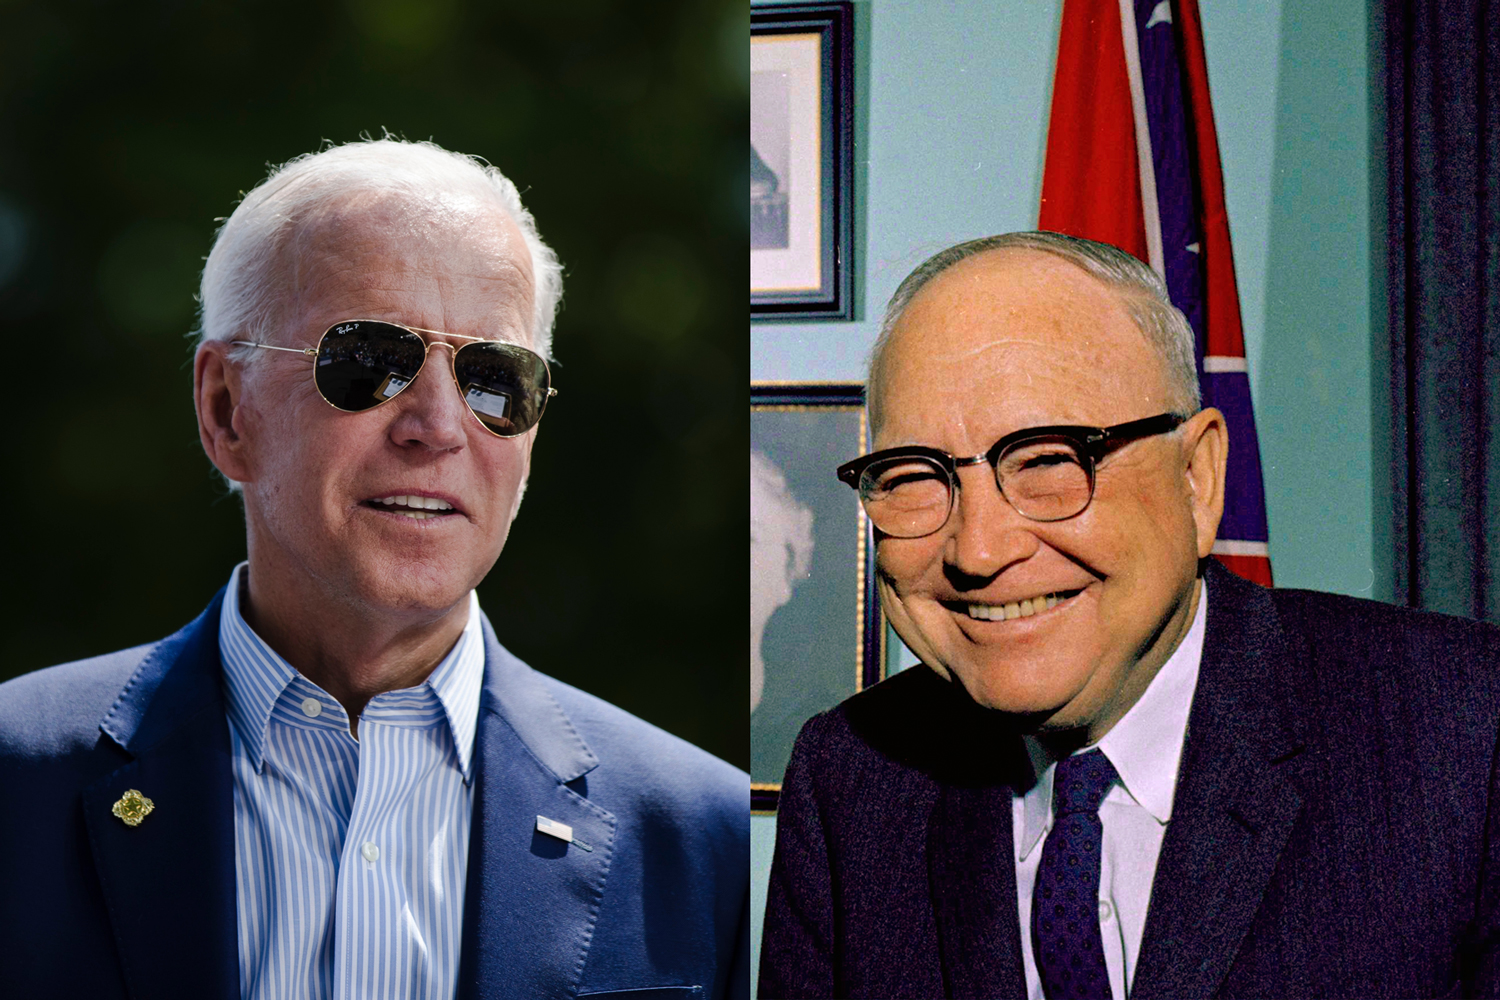 Biden Rejects Calls to Apologize for Praise of Segregationist